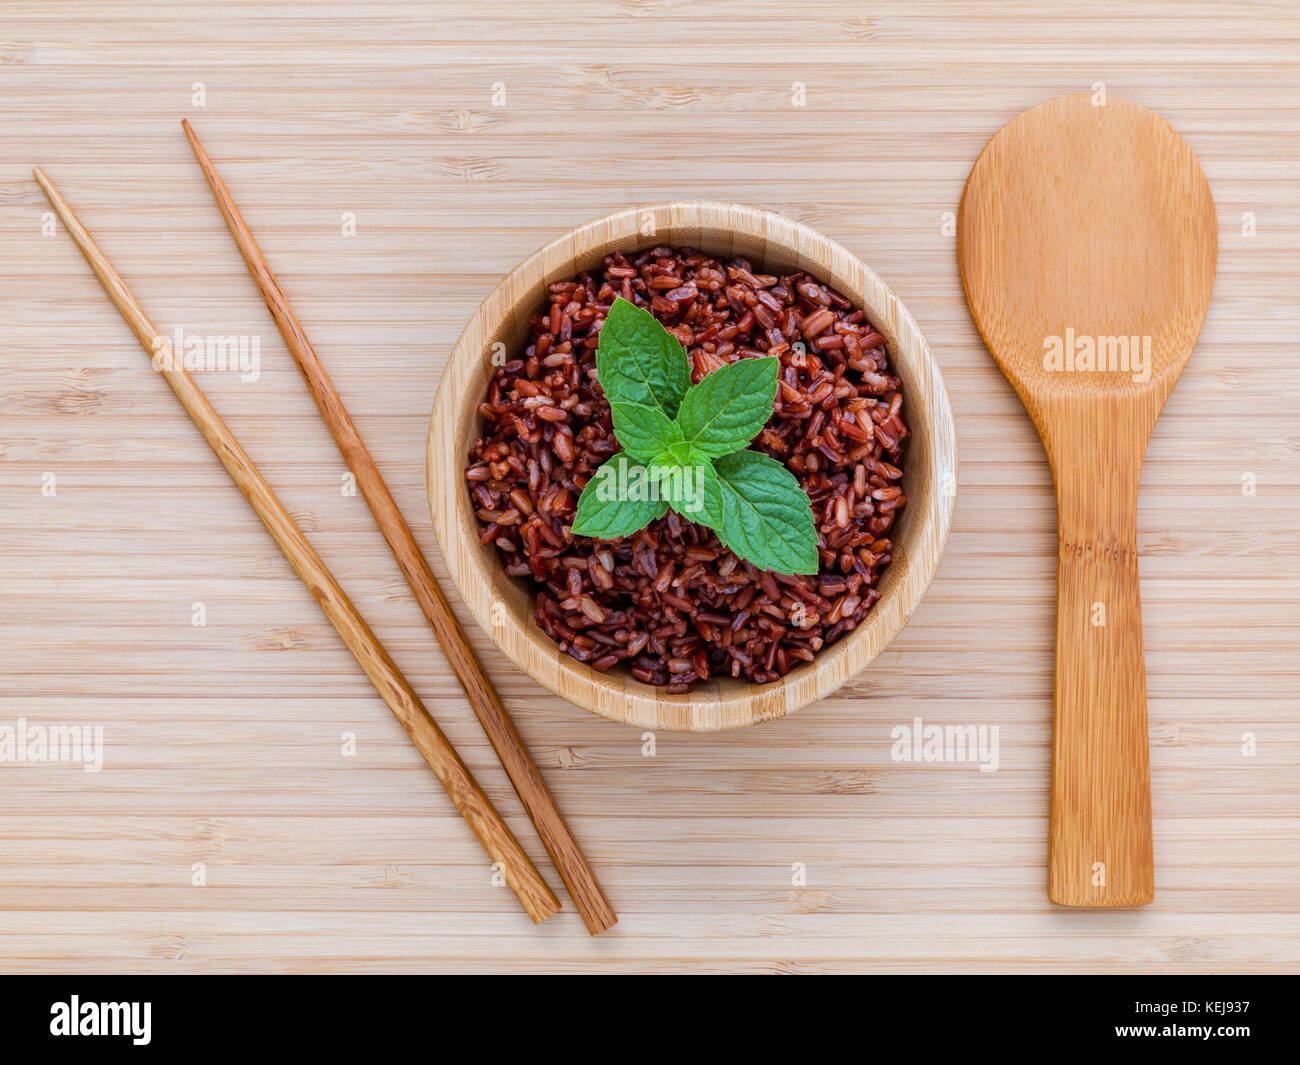 Steamed traditional thai rice in bowl with spoon hight fiber and vitamin E for dietary and healthy food. - Stock Image